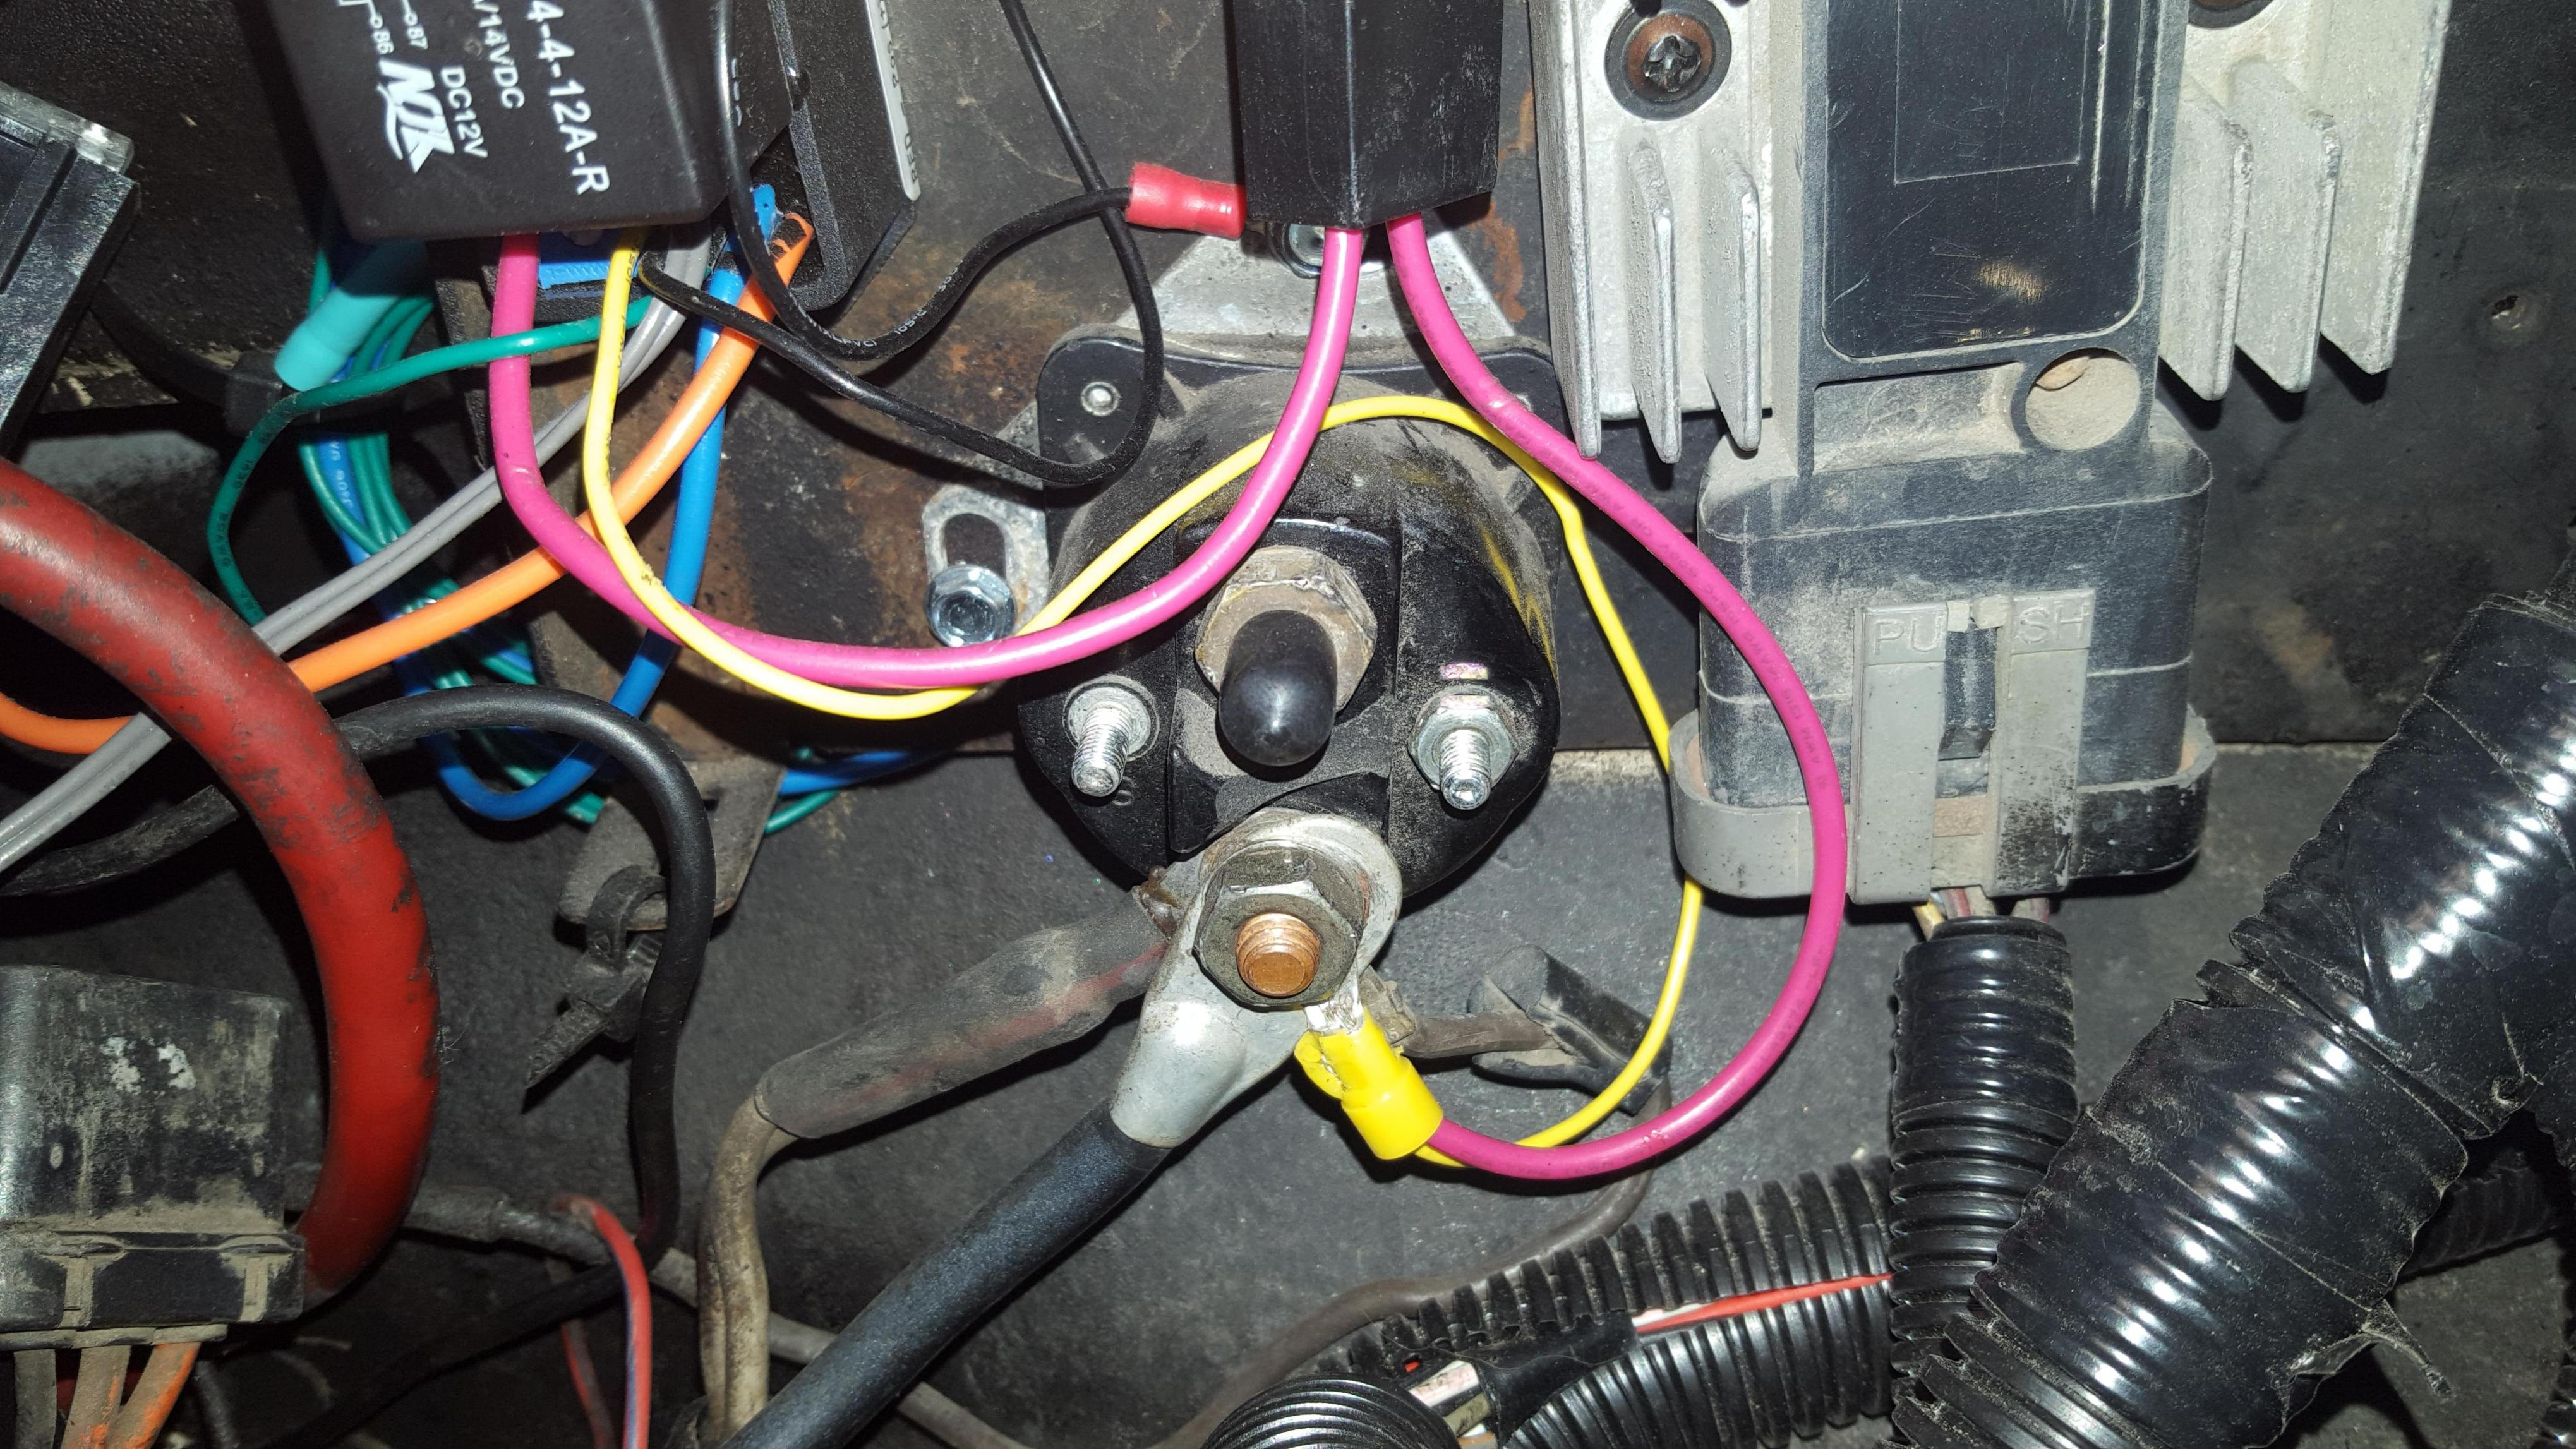 94 ford ranger wiring diagram low voltage outdoor lighting starter solenoid question - mustang forum